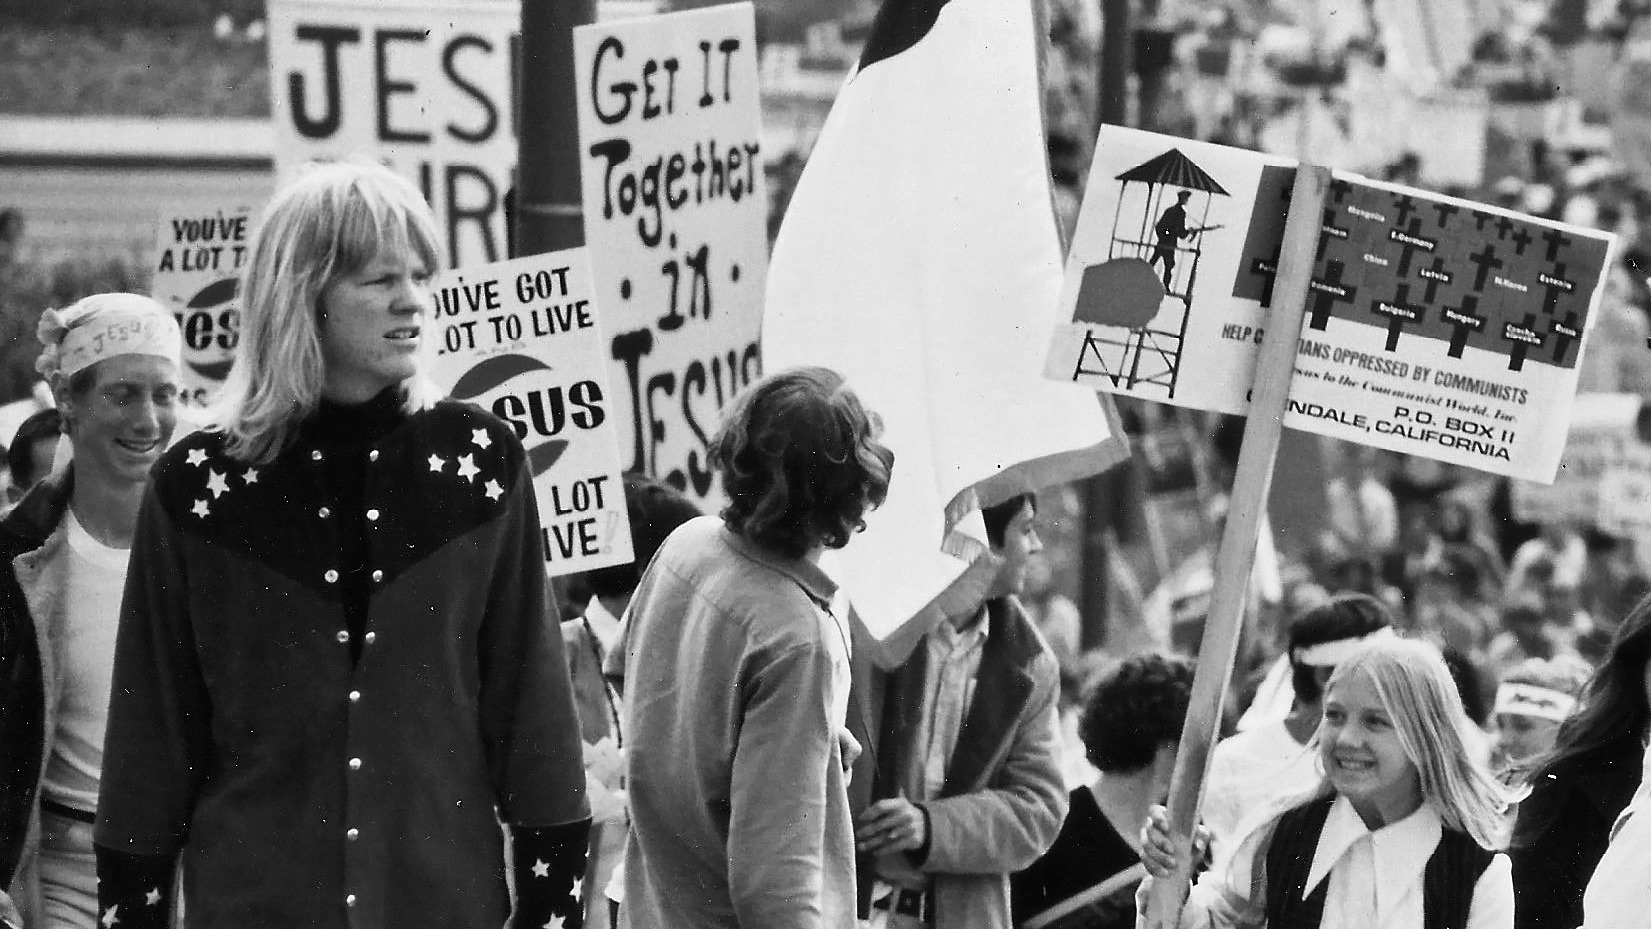 The 'Father Of Christian Rock' Larry Norman's Battles With Evangelicalism